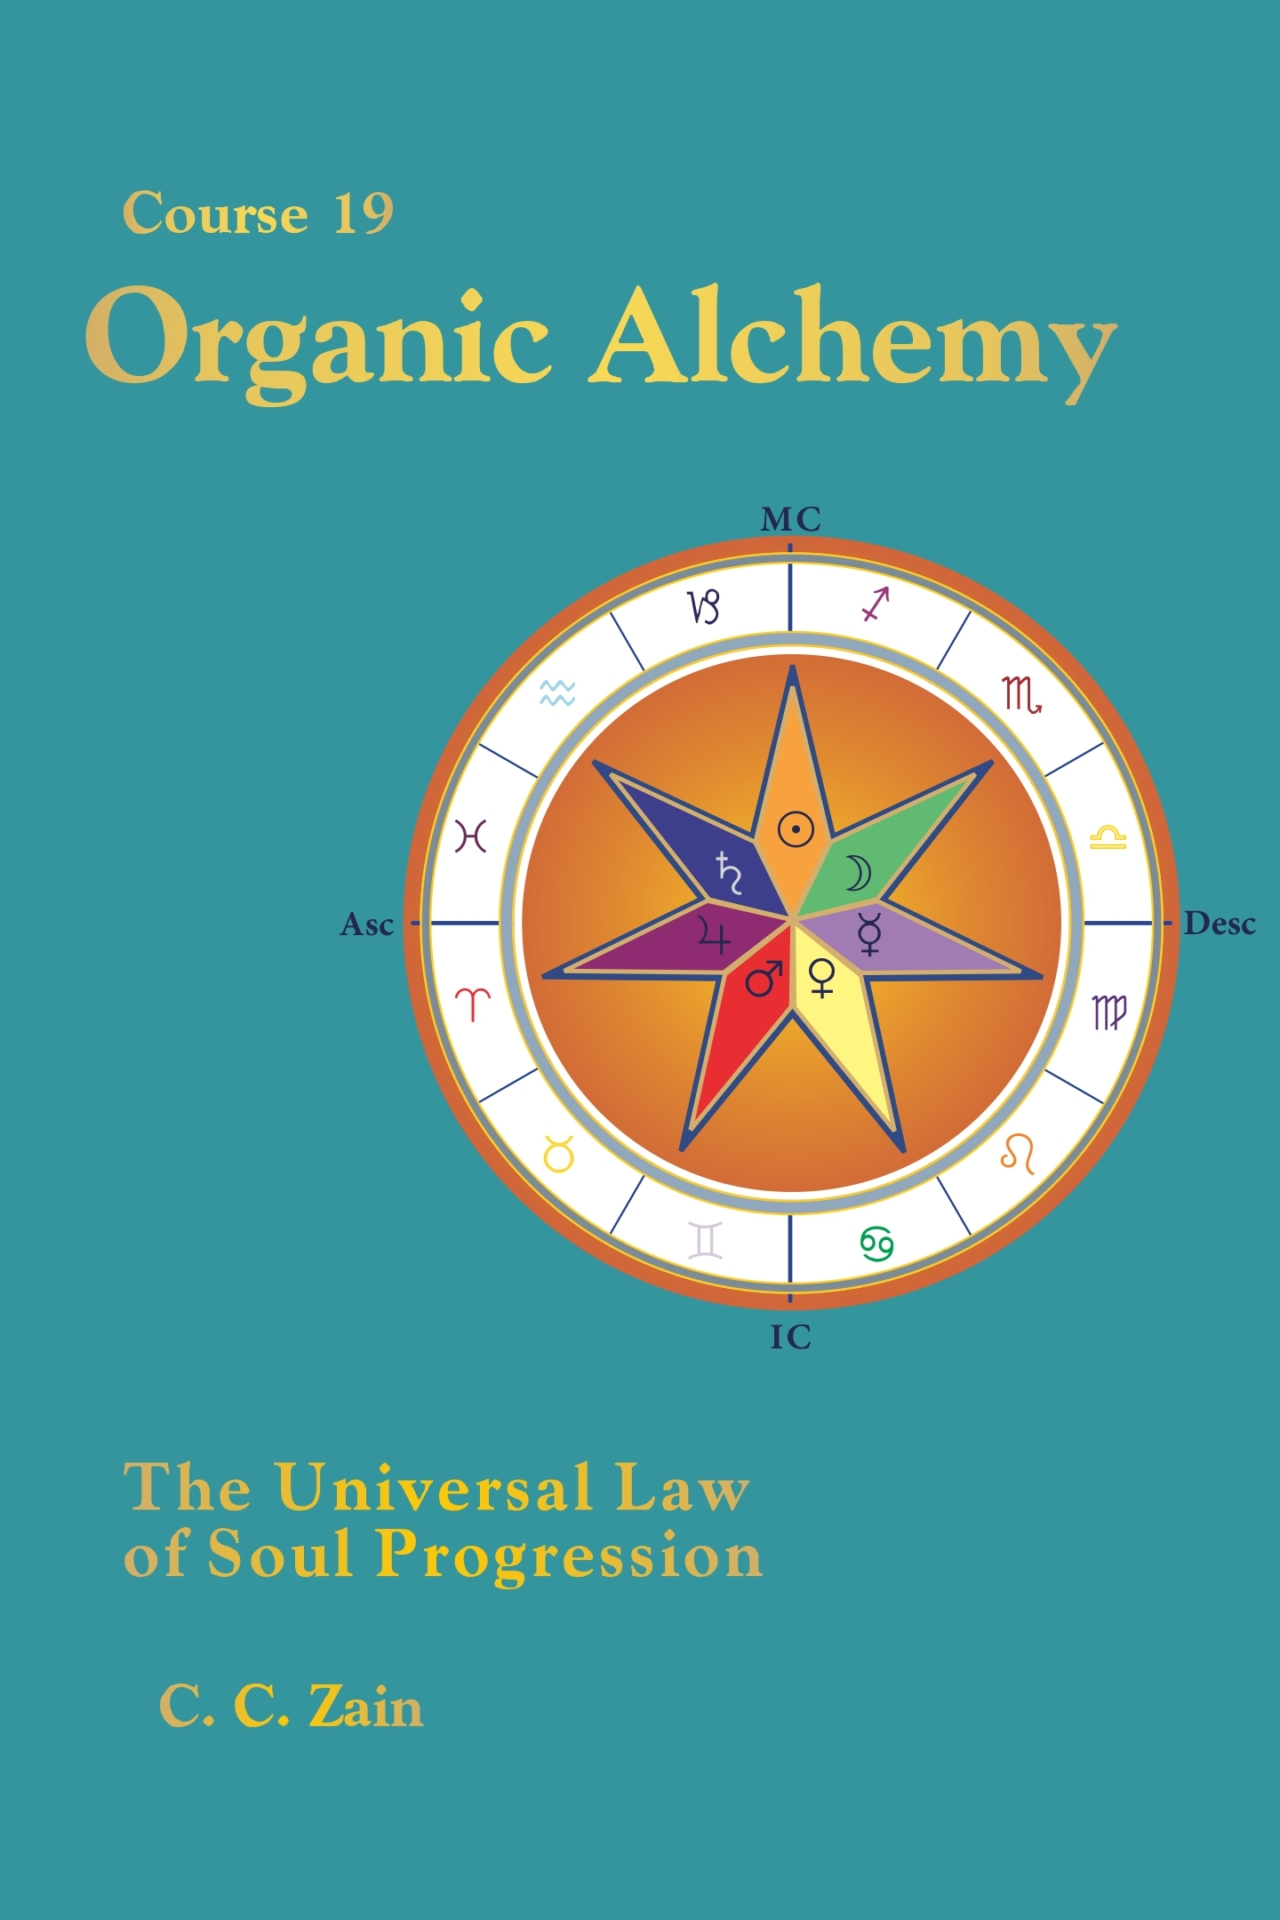 https://study.academyofhermeticarts.org/wp-content/uploads/2020/04/19_Organic_Alchemy_eBook_Cover-1280x1920.jpg